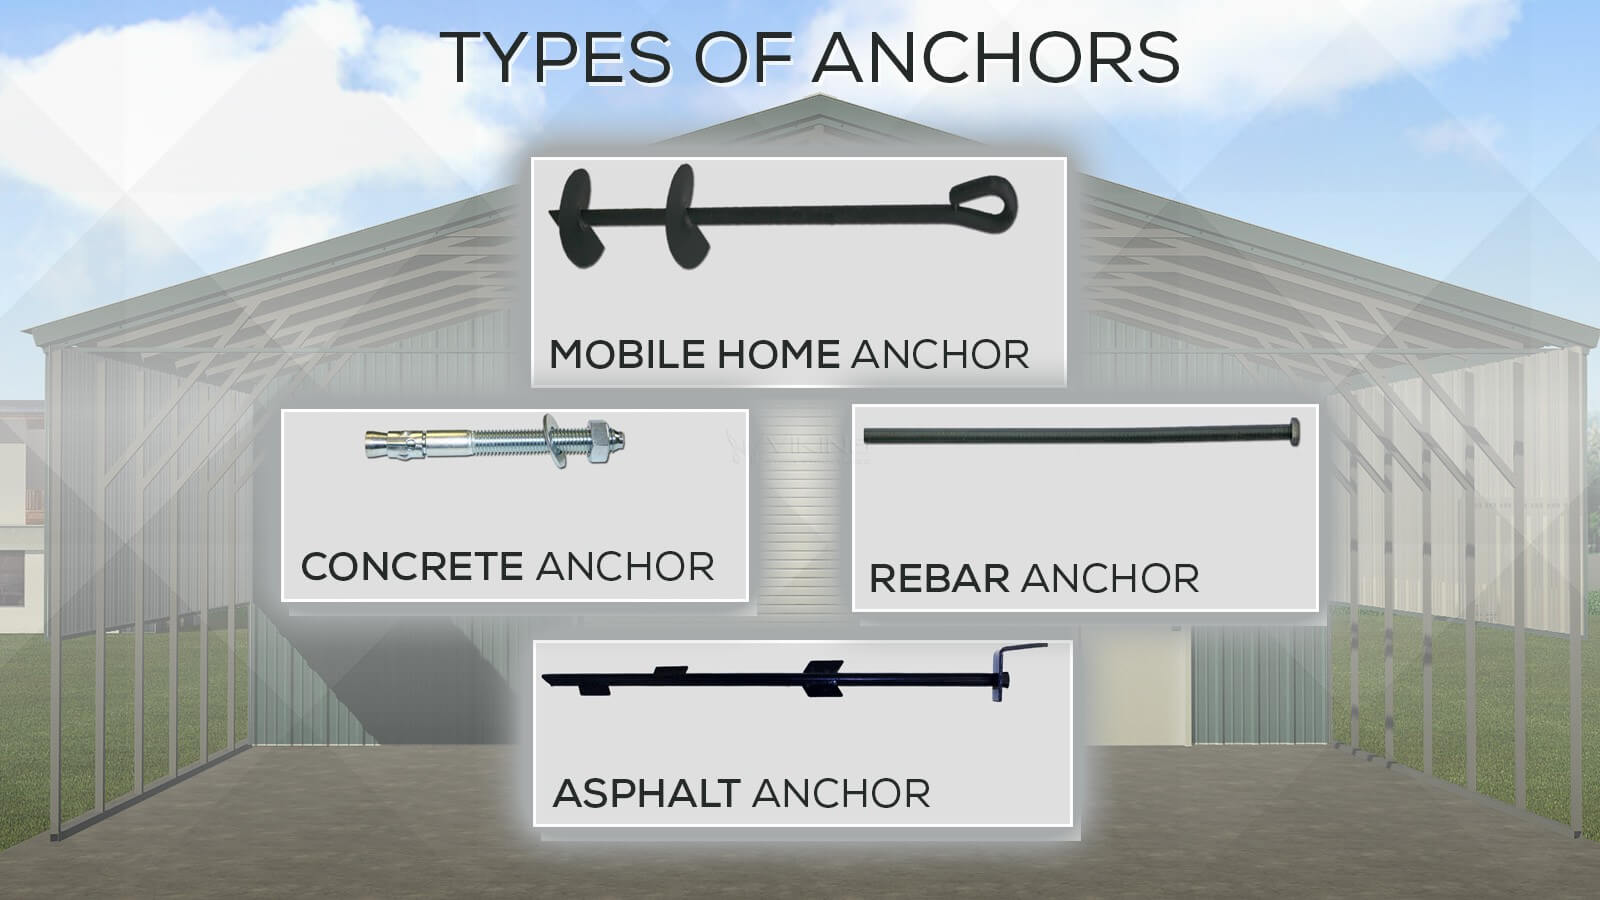 Different Types of Anchors for Metal Carports and Metal Buildings on earthquake tie downs for homes, earth anchors for mobile homes, auger type anchors, auger anchor kit, auger trailer anchors, anchor custom homes, auger anchors drywall, auger anchors home depot, screw anchors for mobile homes, auger anchors for sheds, hurricane anchors for mobile homes, concrete anchors for mobile homes, auger coupling shaft tube, ground anchors for mobile homes, auger carport anchors, auger anchors in snow, auger anchors for fences, auger anchors for boats, rock anchors for mobile homes, auger ground anchors,